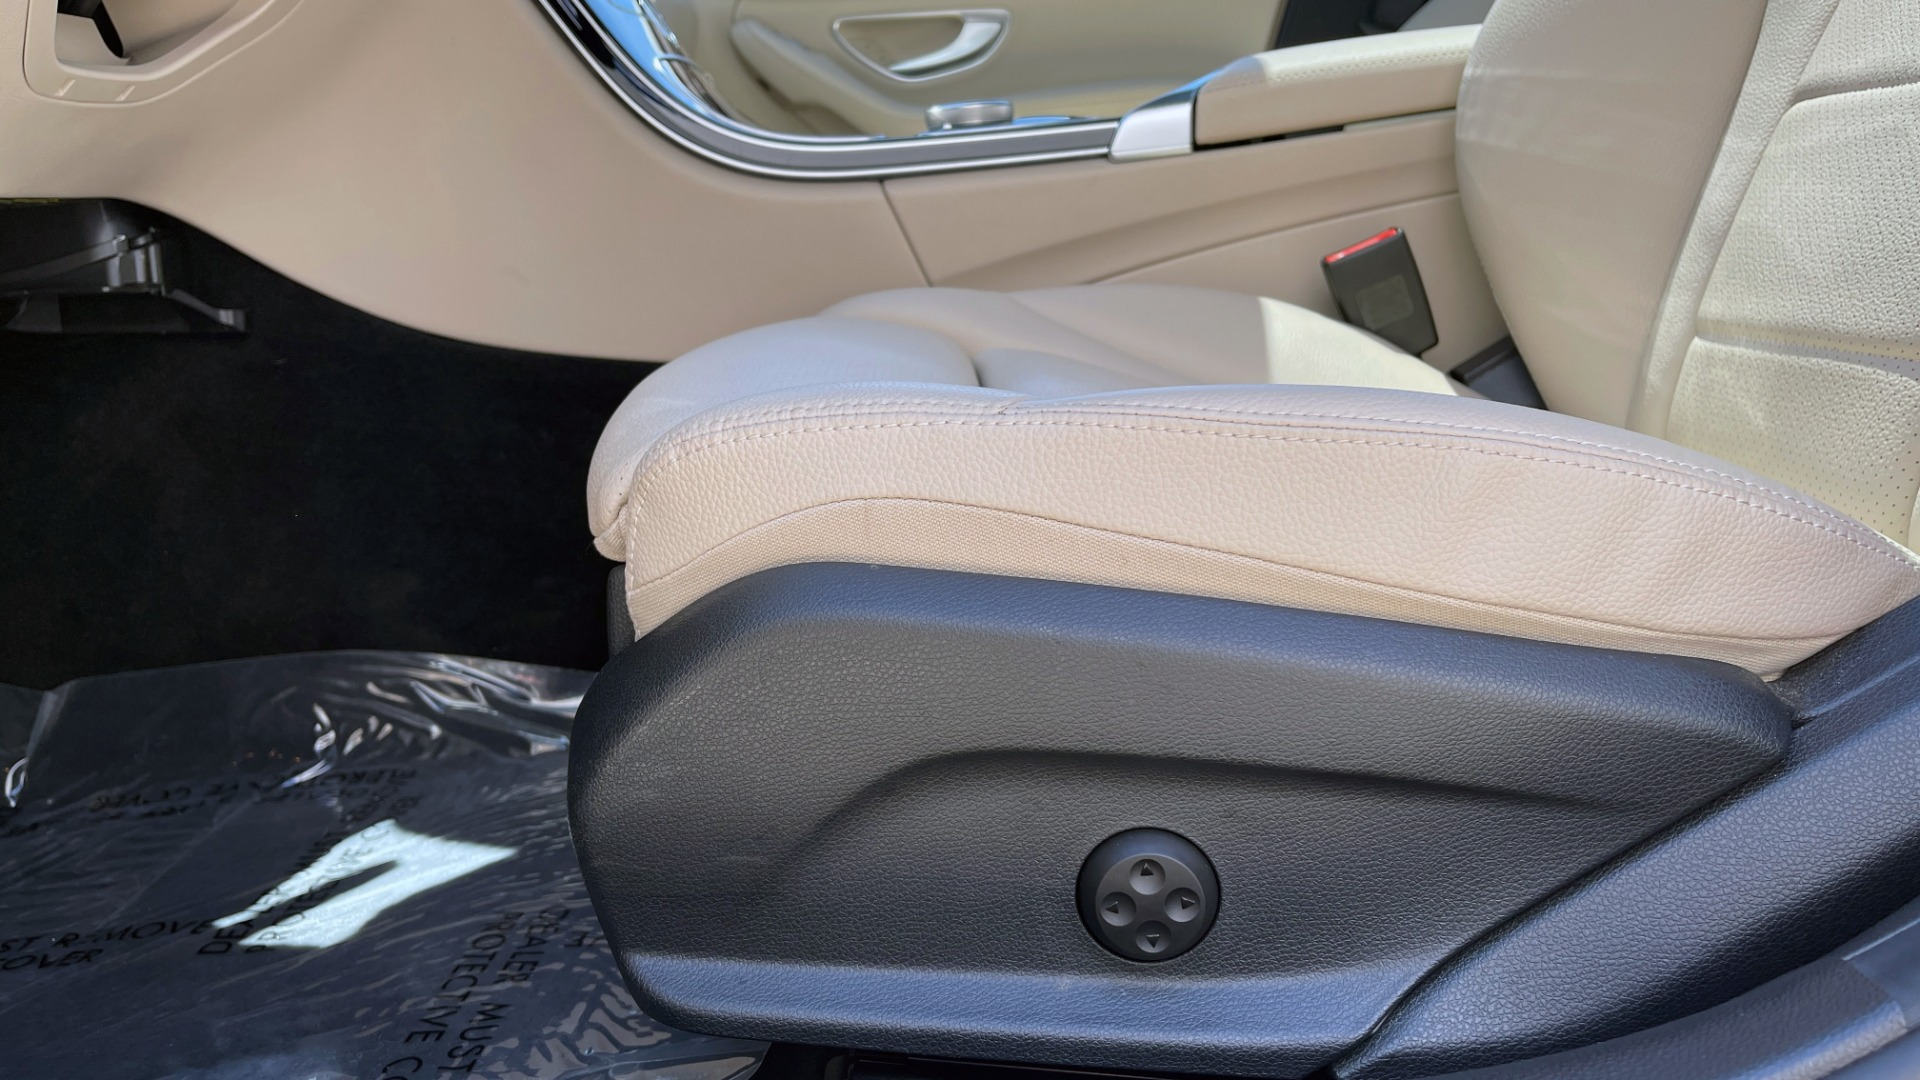 Used 2018 Mercedes-Benz C-CLASS C 300 PREMIUM / KEYLESS-GO / PANO-ROOF / BURMESTER / REARVIEW for sale $29,495 at Formula Imports in Charlotte NC 28227 33